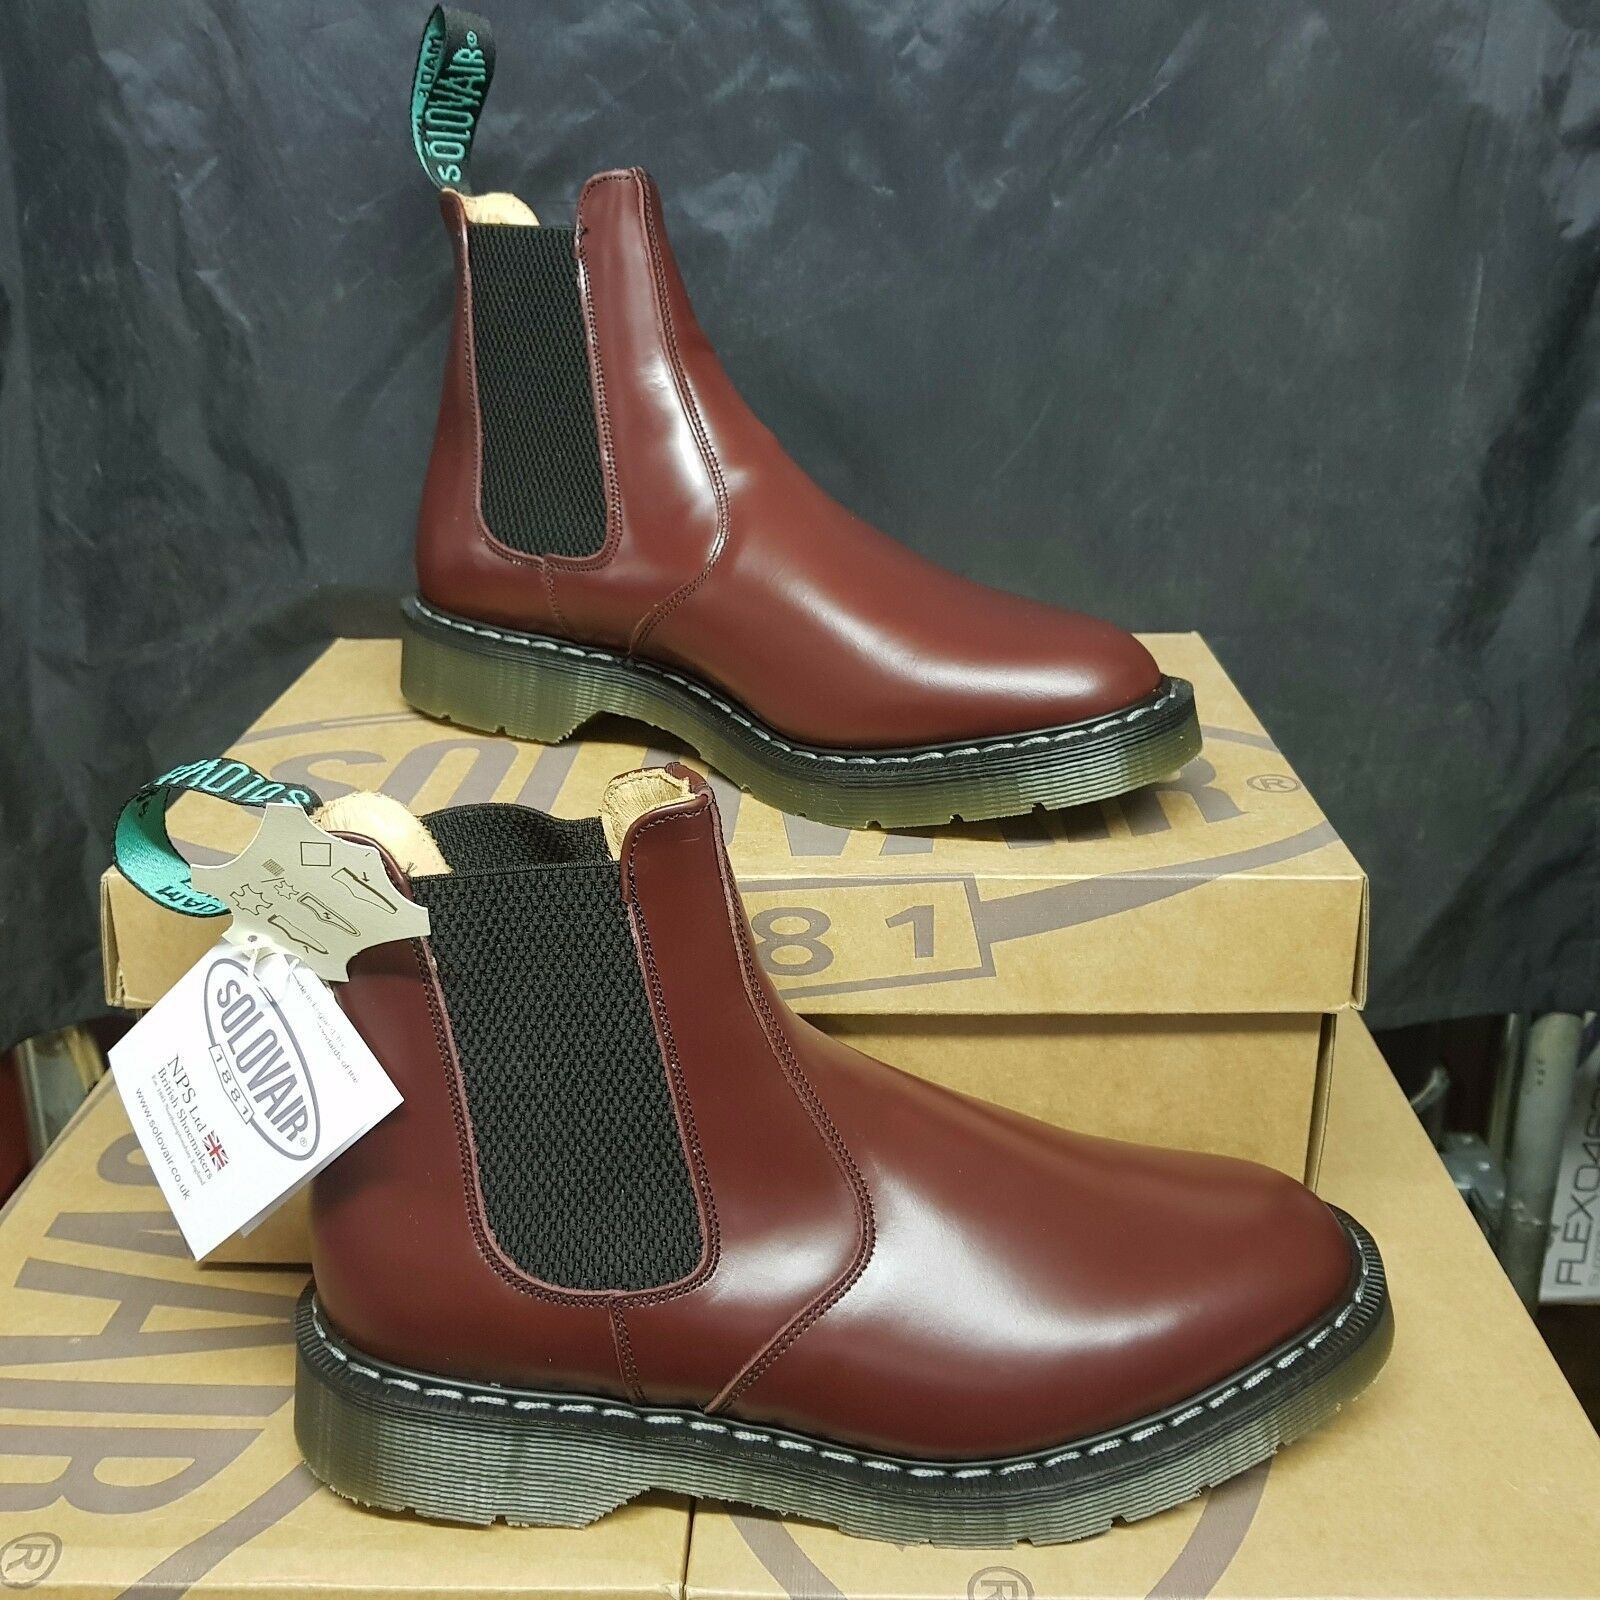 SOLOVAIR Oxblood Dealer bota hombres zapatos Leather (pv 155£)